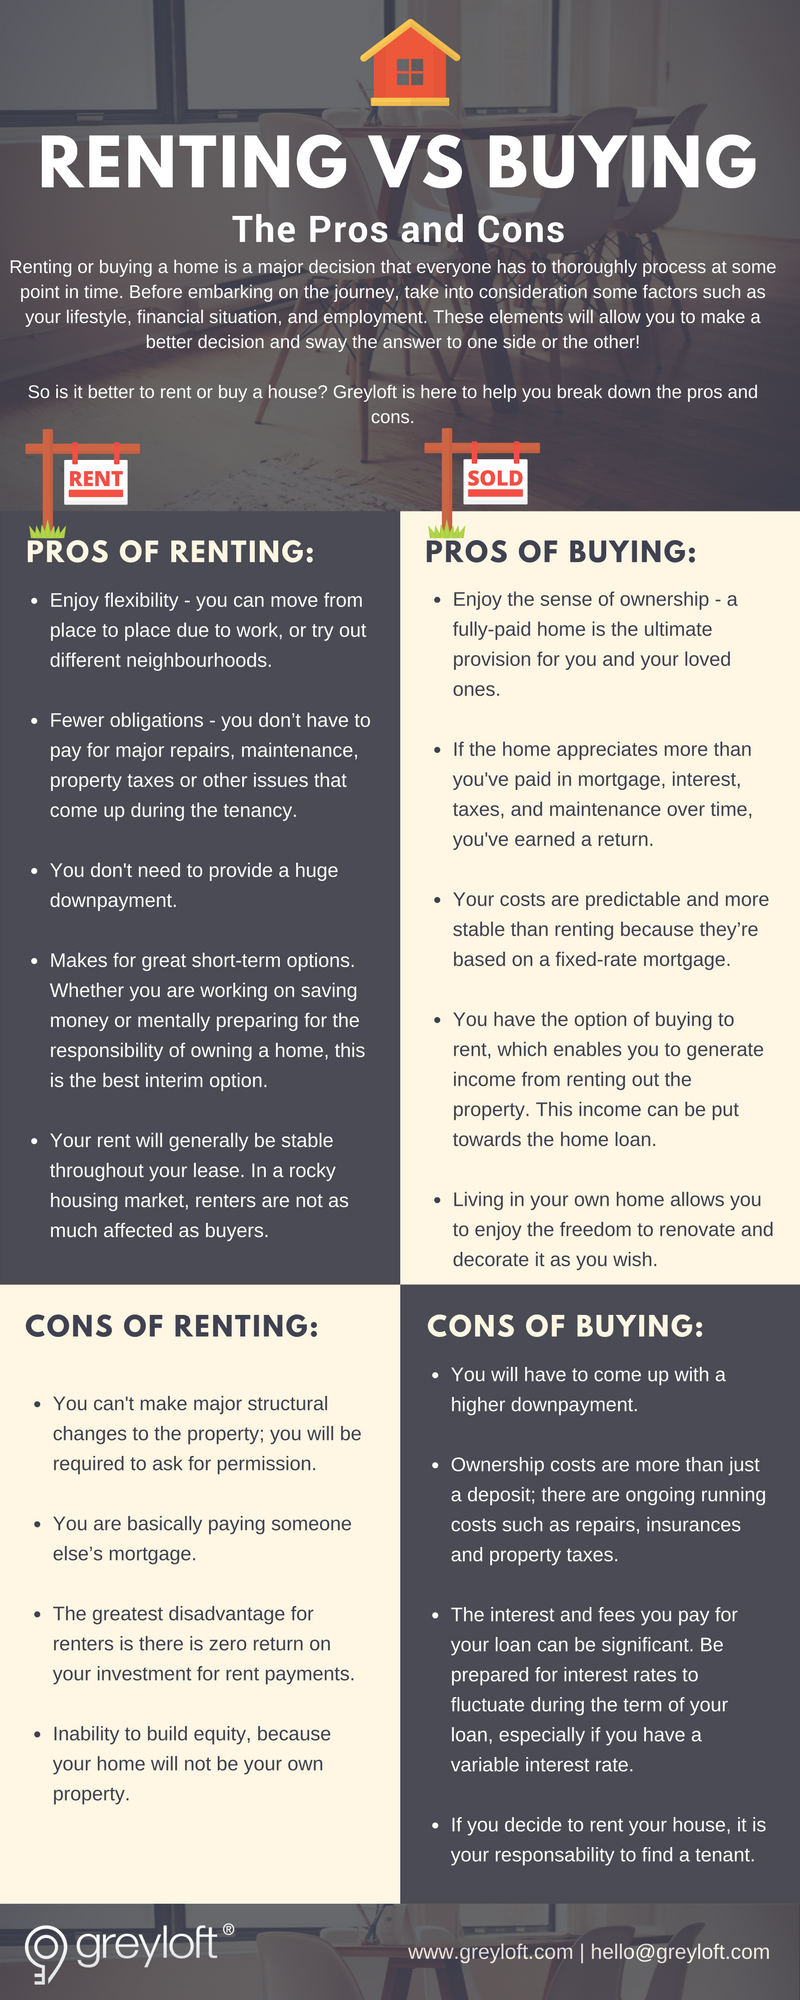 Singapore Property Renting Vs Buying The Pros And Cons Infographic Rent Vs Buy Real Estate Fun Renting Vs Buying Home